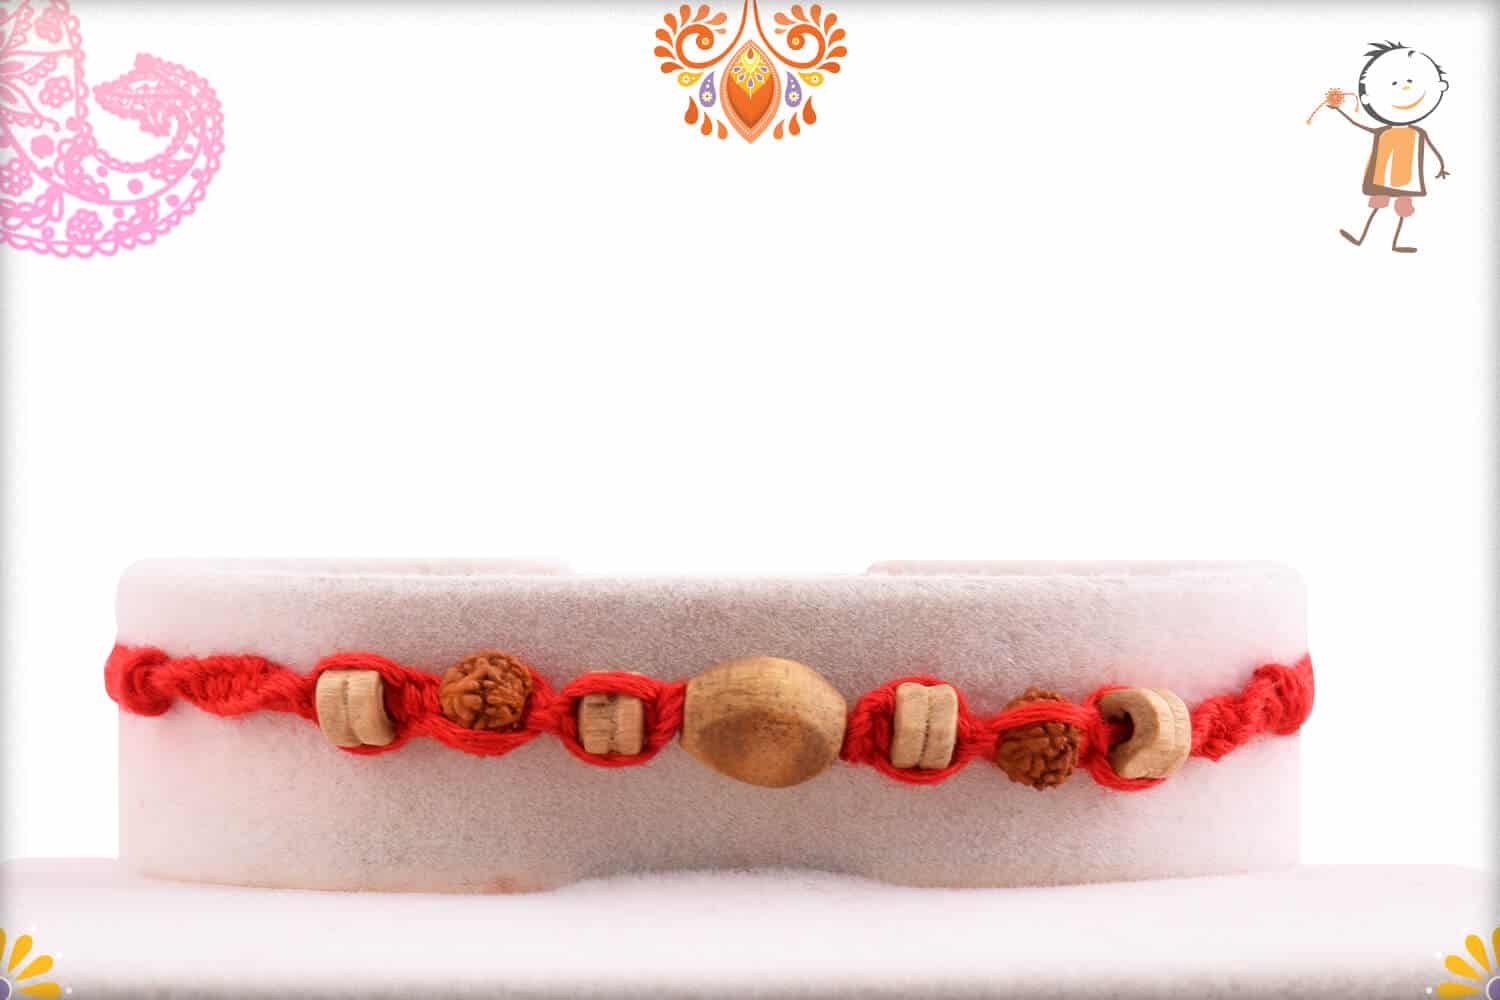 Uniquely Handcrafted Red Thread Rakhi with Rudraksh | Send Rakhi Gifts Online 1